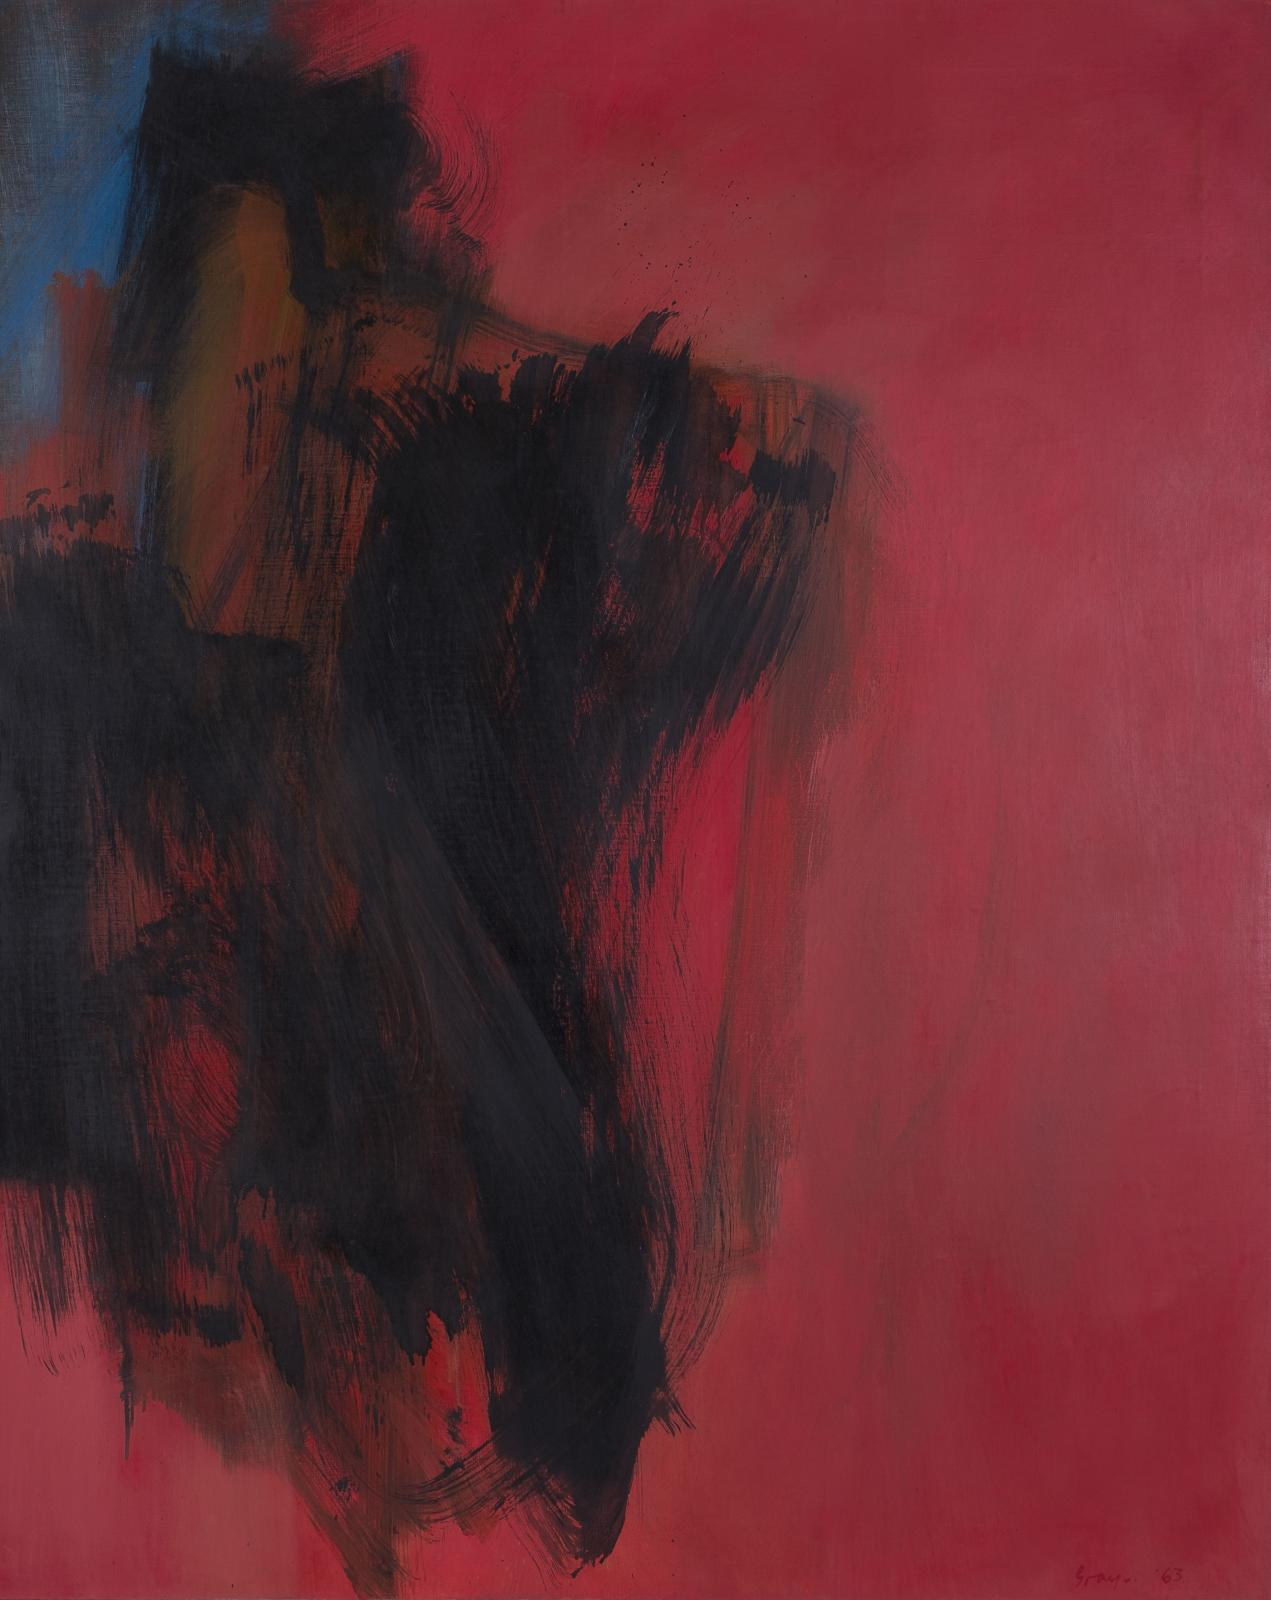 Cleve Gray, Dark Entry, 1963